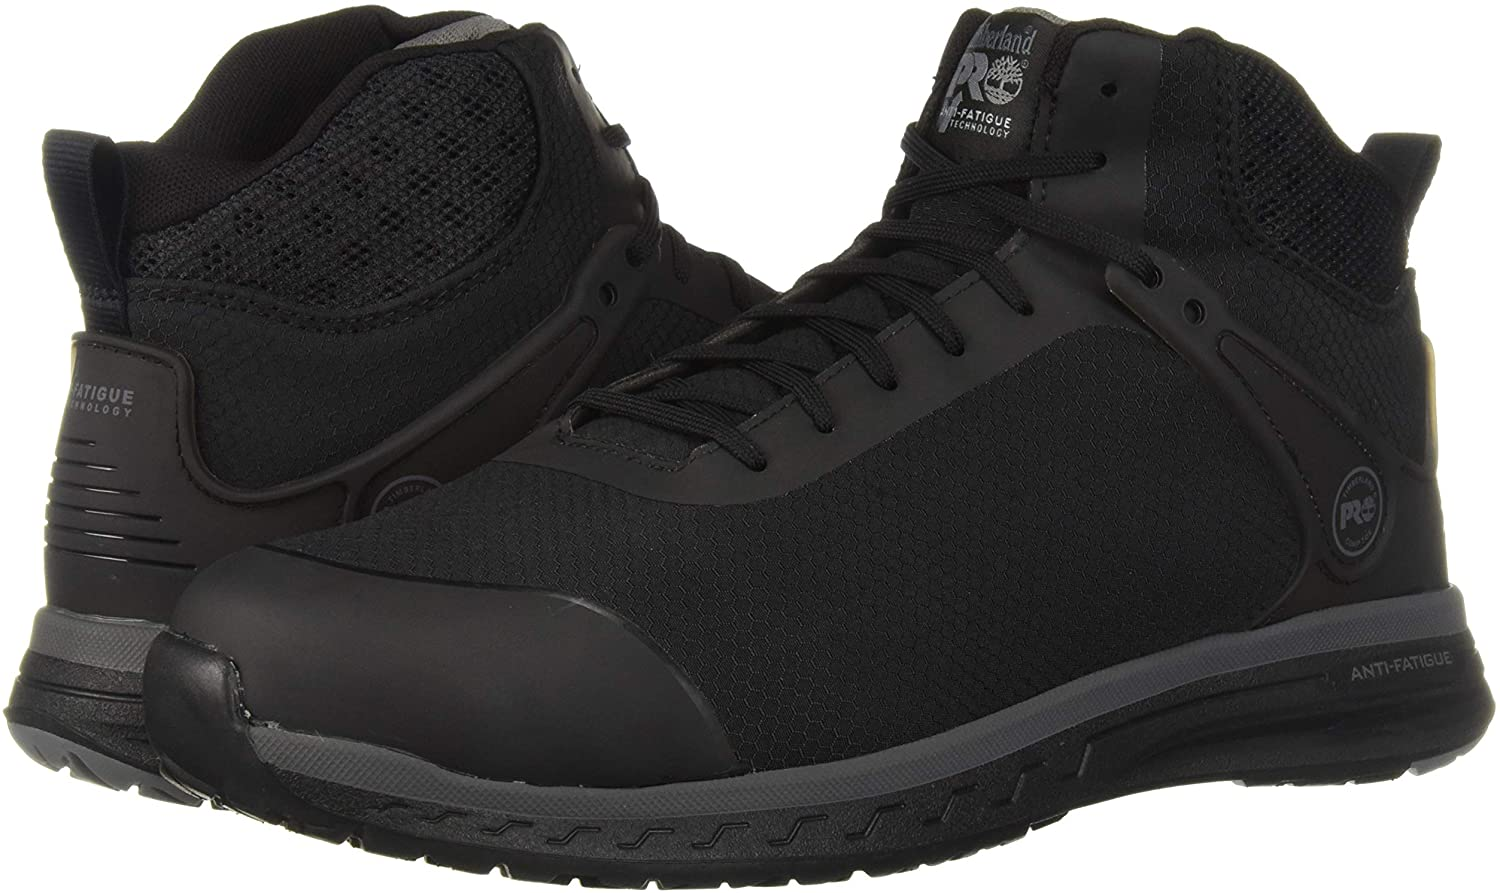 Timberland PRO Composite Toe Minimalist Boots are our best choice when it comes to minimalist boots.